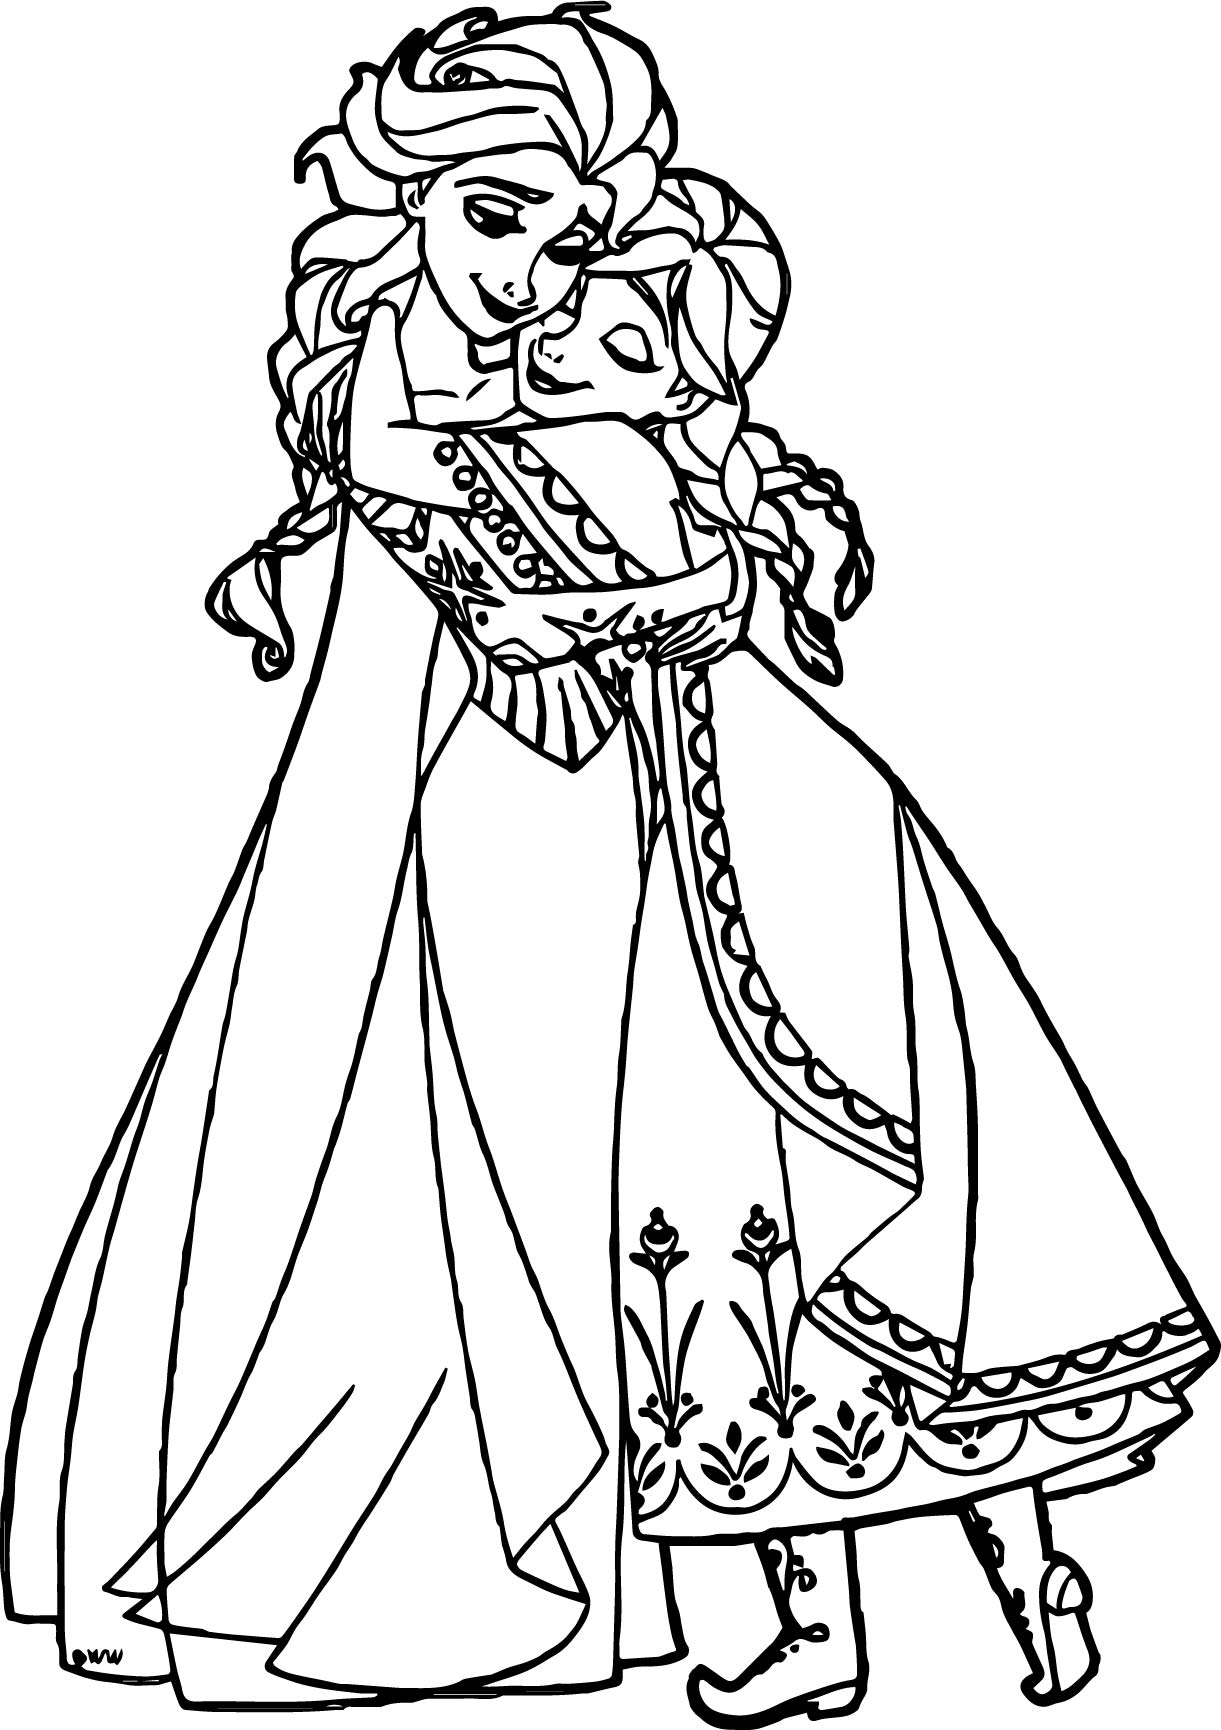 elsa and anna coloring page anna elsa hugging coloring page